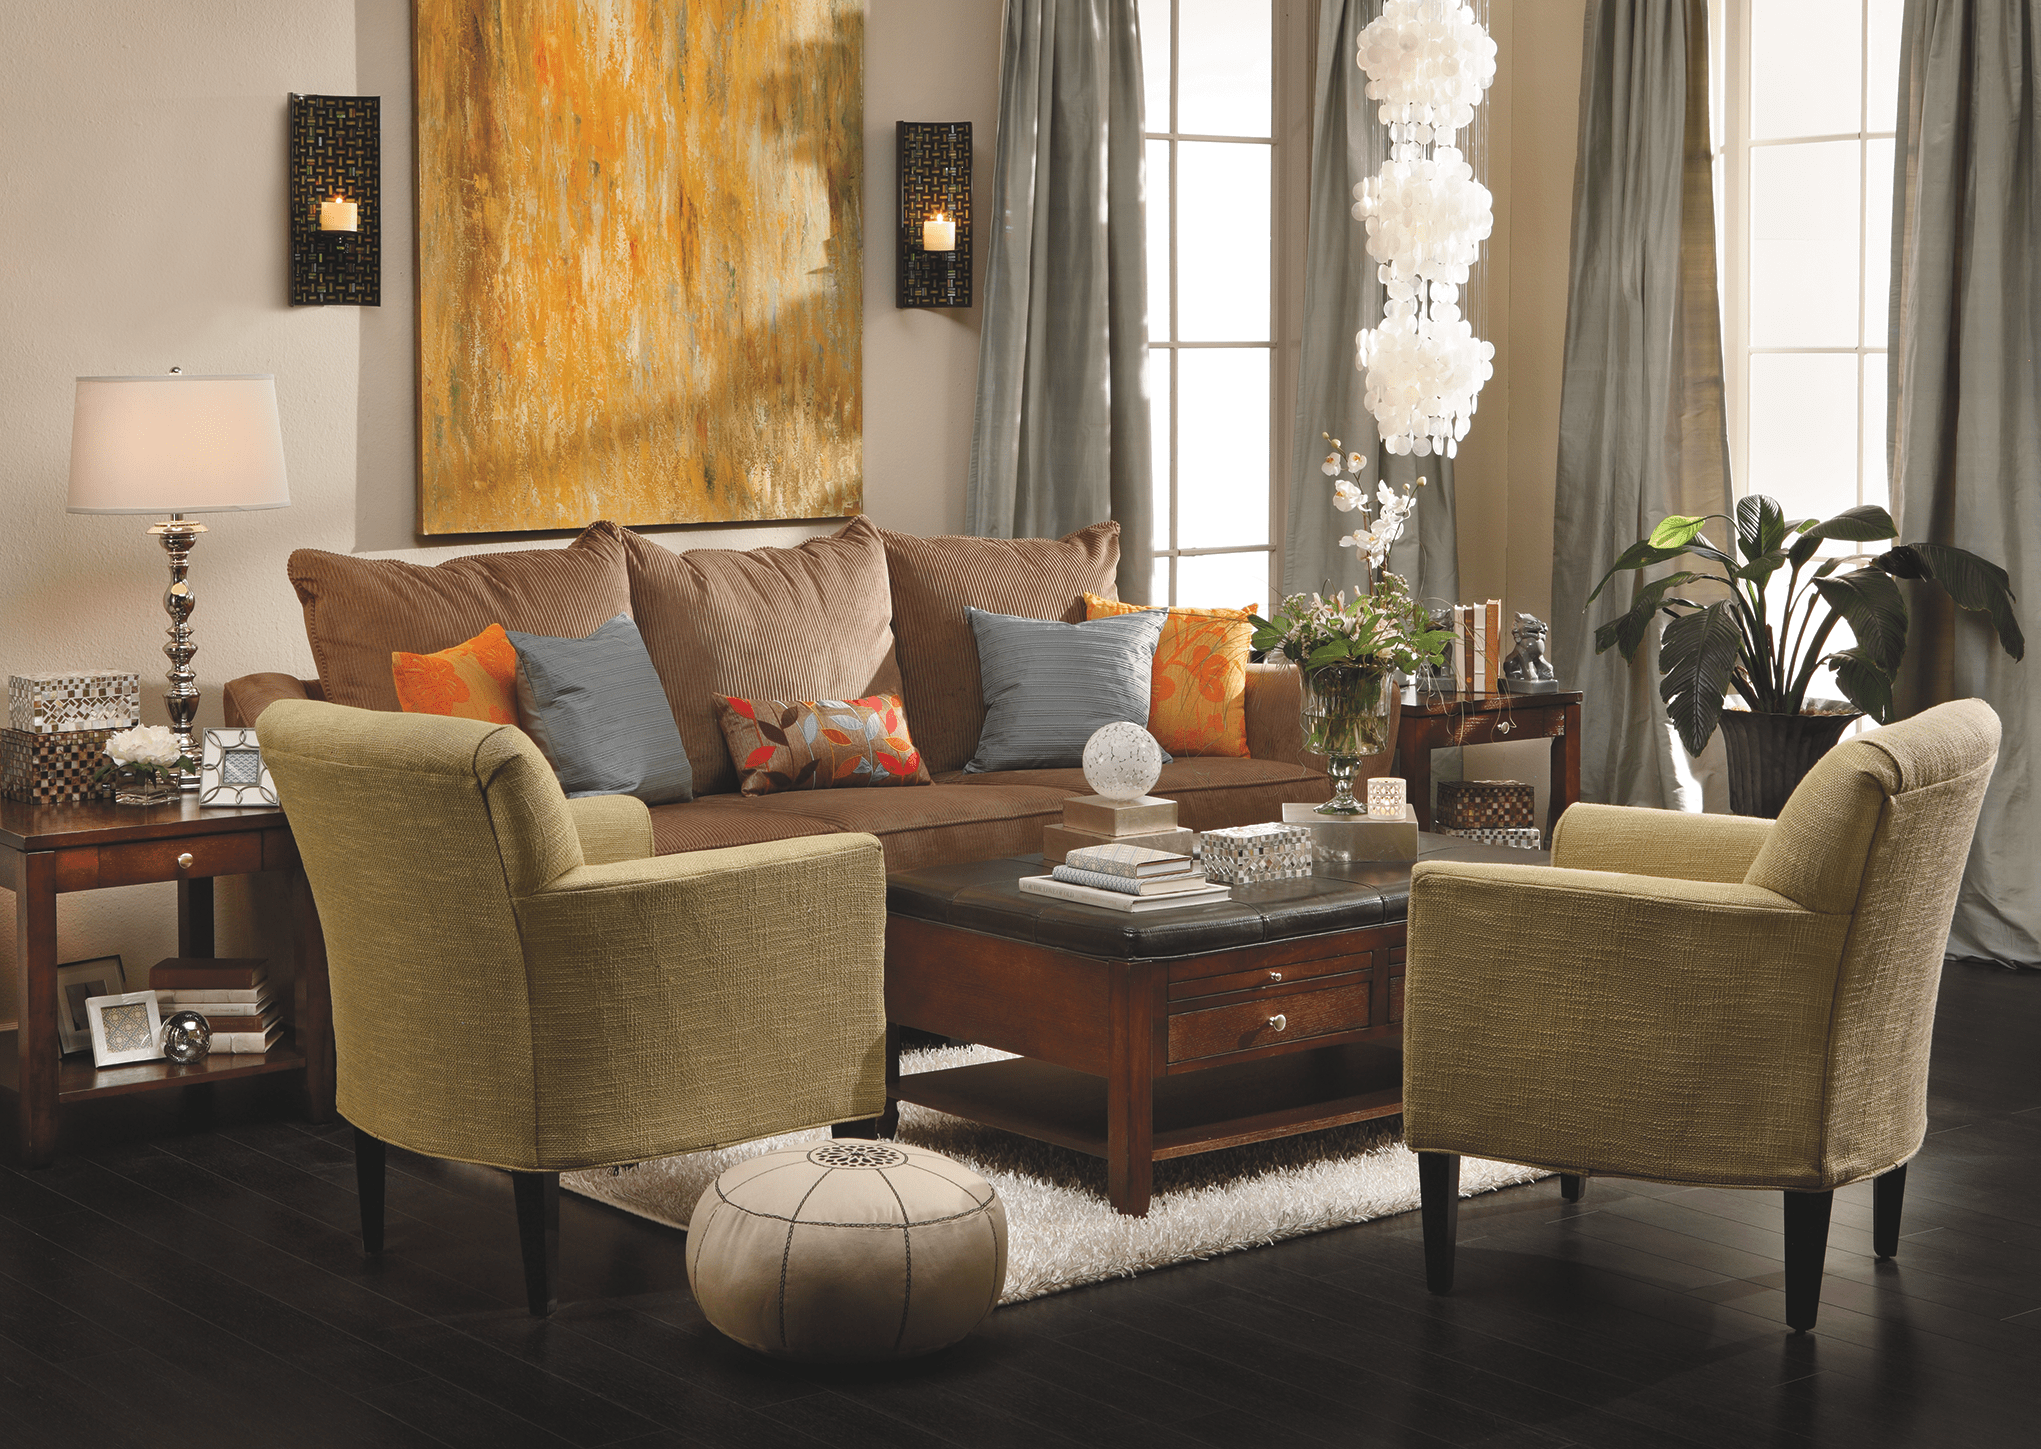 accent sofa sets curved sectional sofas leather how to choose the right chair home is here